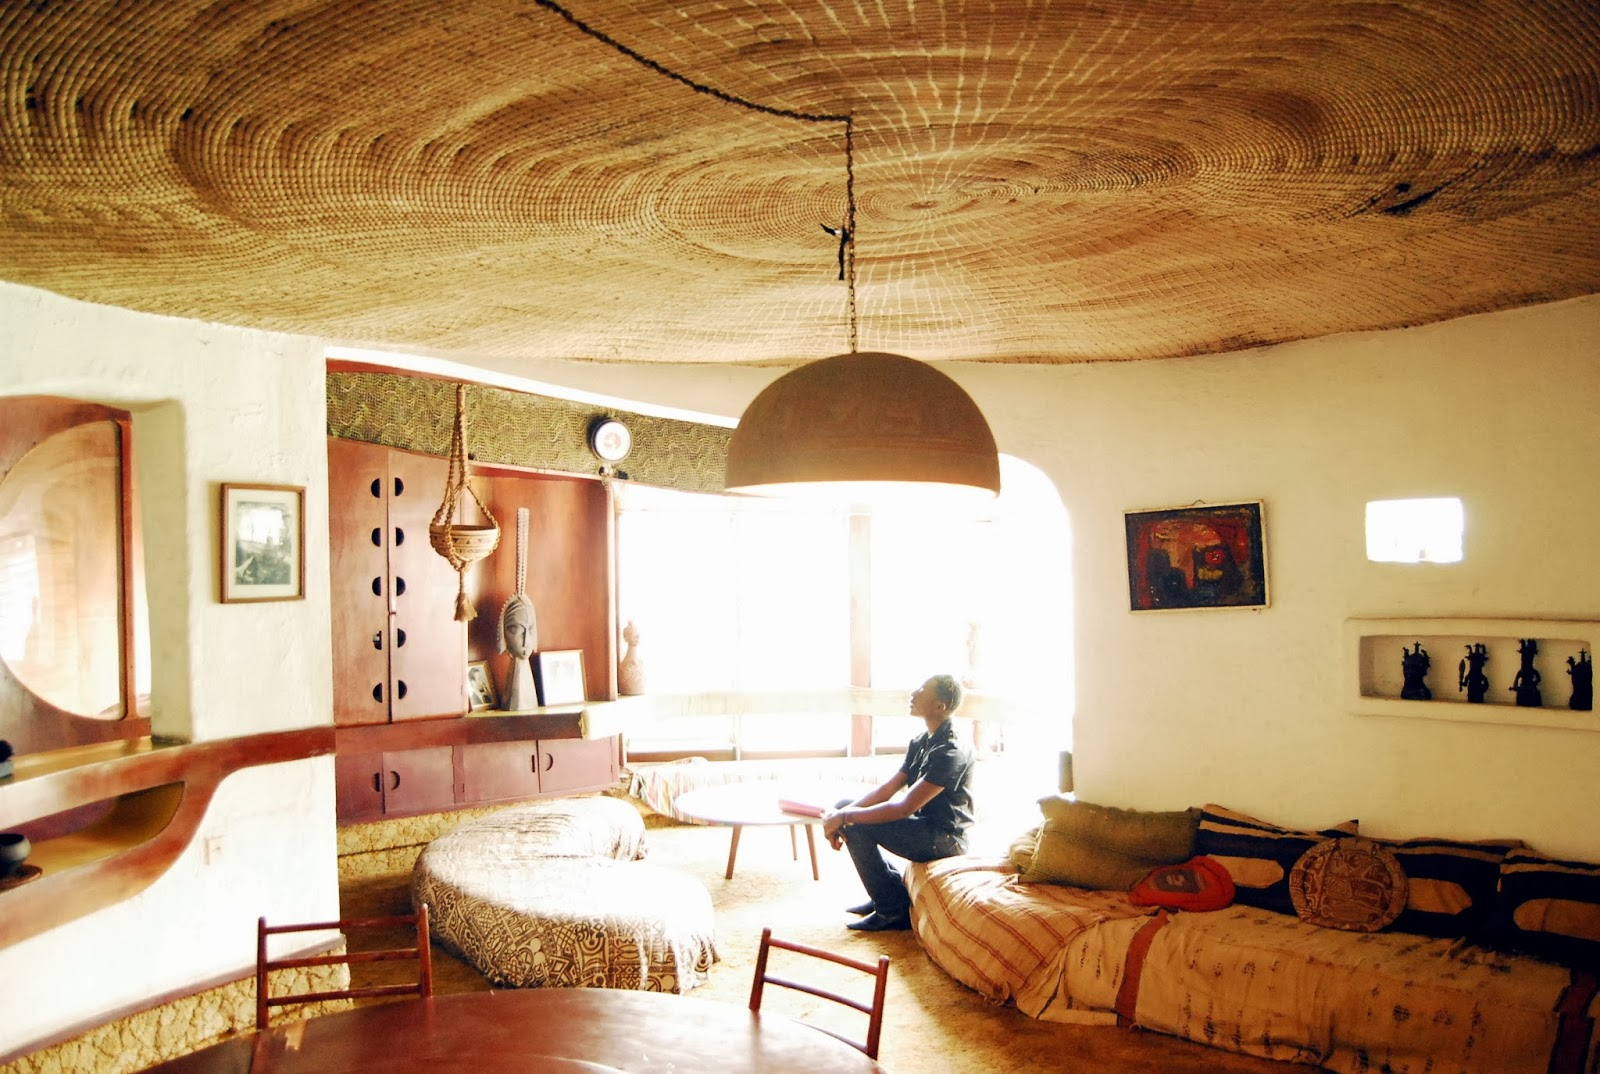 Architecture in africa a modernist african interior one photo sunday